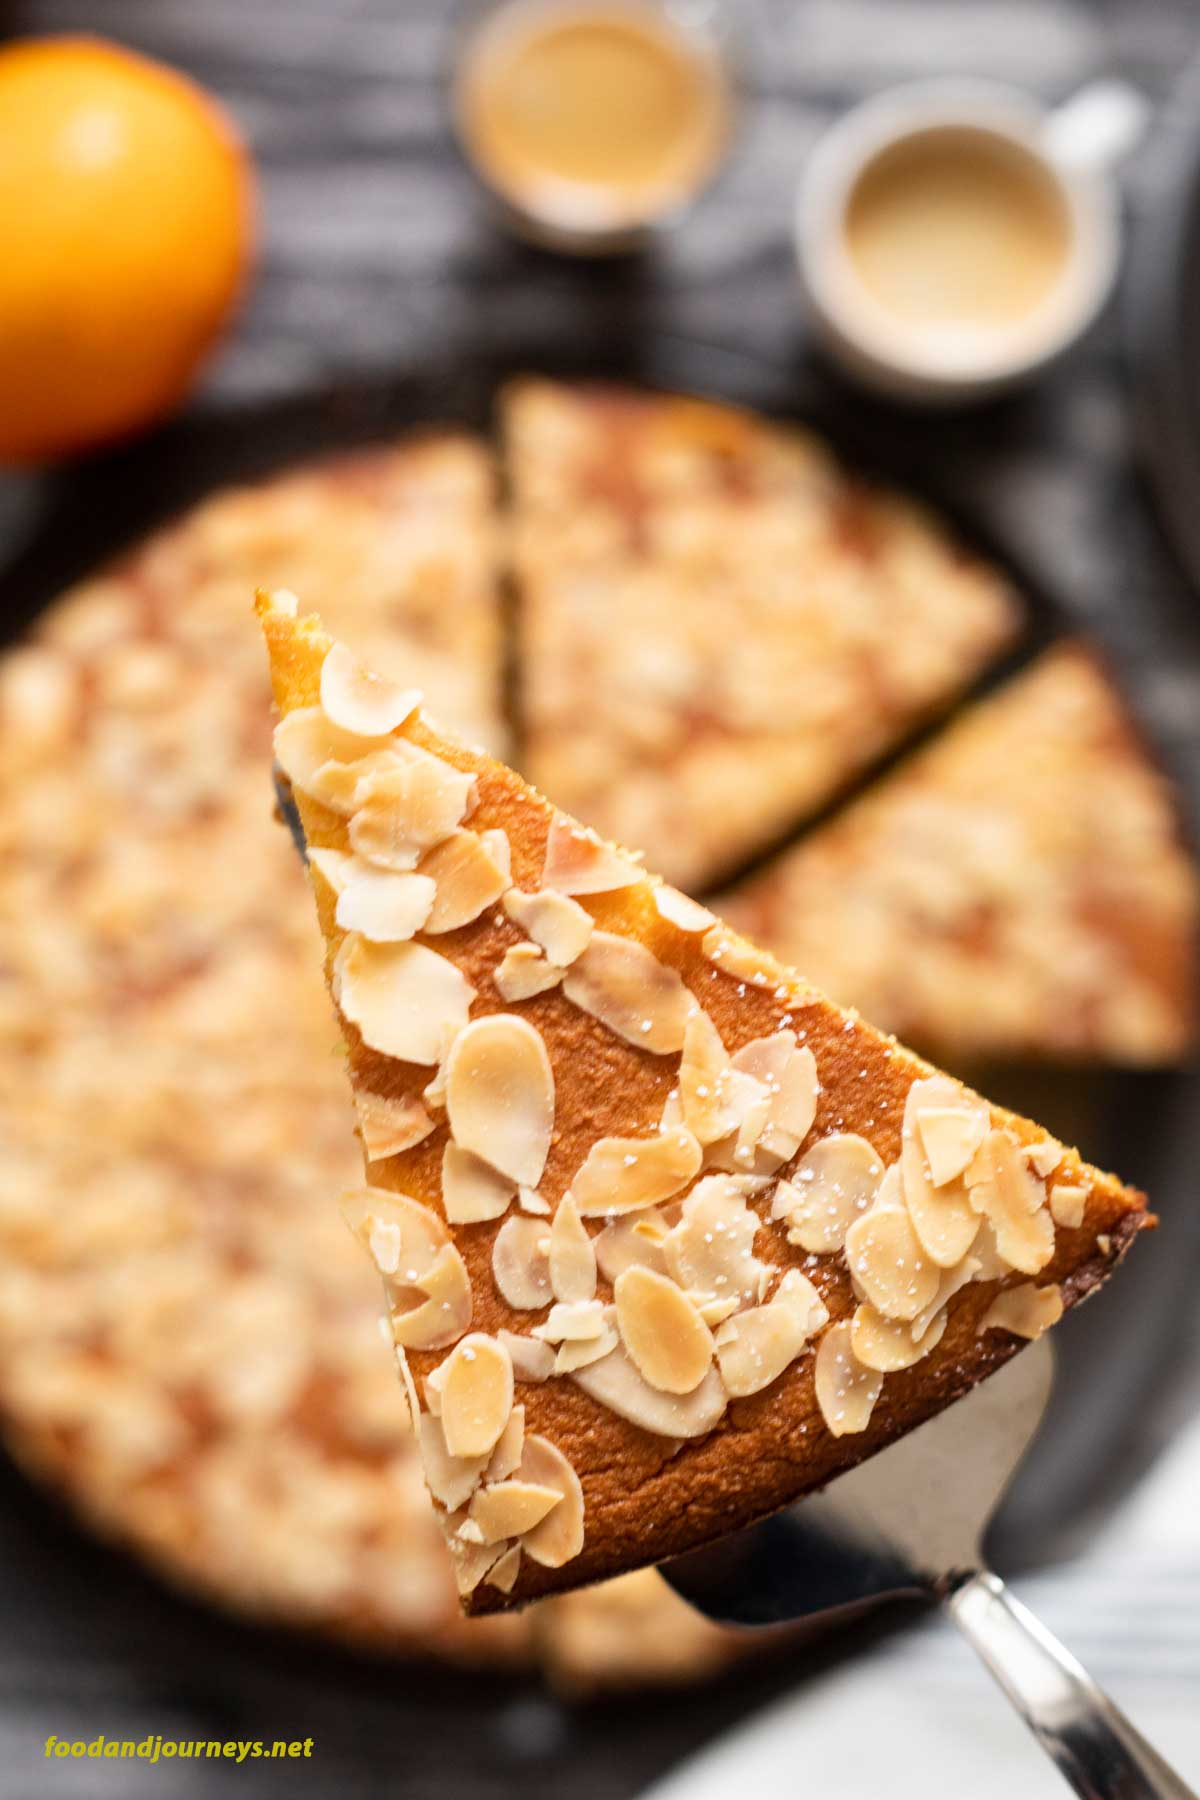 A slice of French Orange and Almond Flourless cake is being lifted from the baking tray, about to be served. The image highlights the crunchy its of sliced almonds on top of the orange cake.